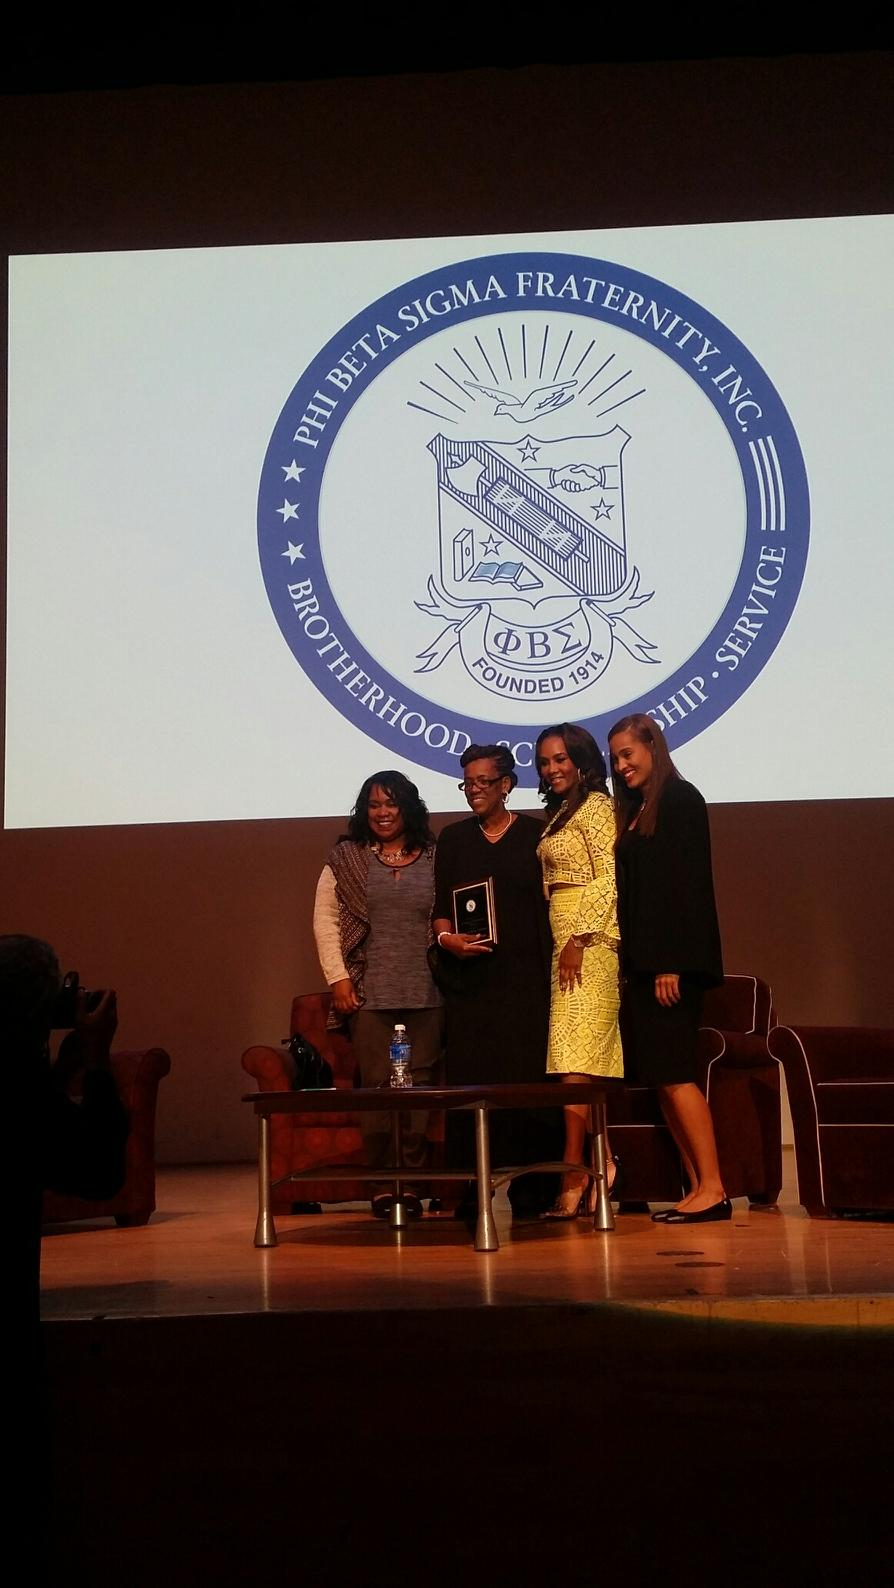 MRS. GRAHAM, FLANKED BY FELLOW AWARD RECIPIENTS: ACTRESS VIVICA FOX, AUTHOR ZANE, AND WNBA STAR SKYLAR DIGGINS.